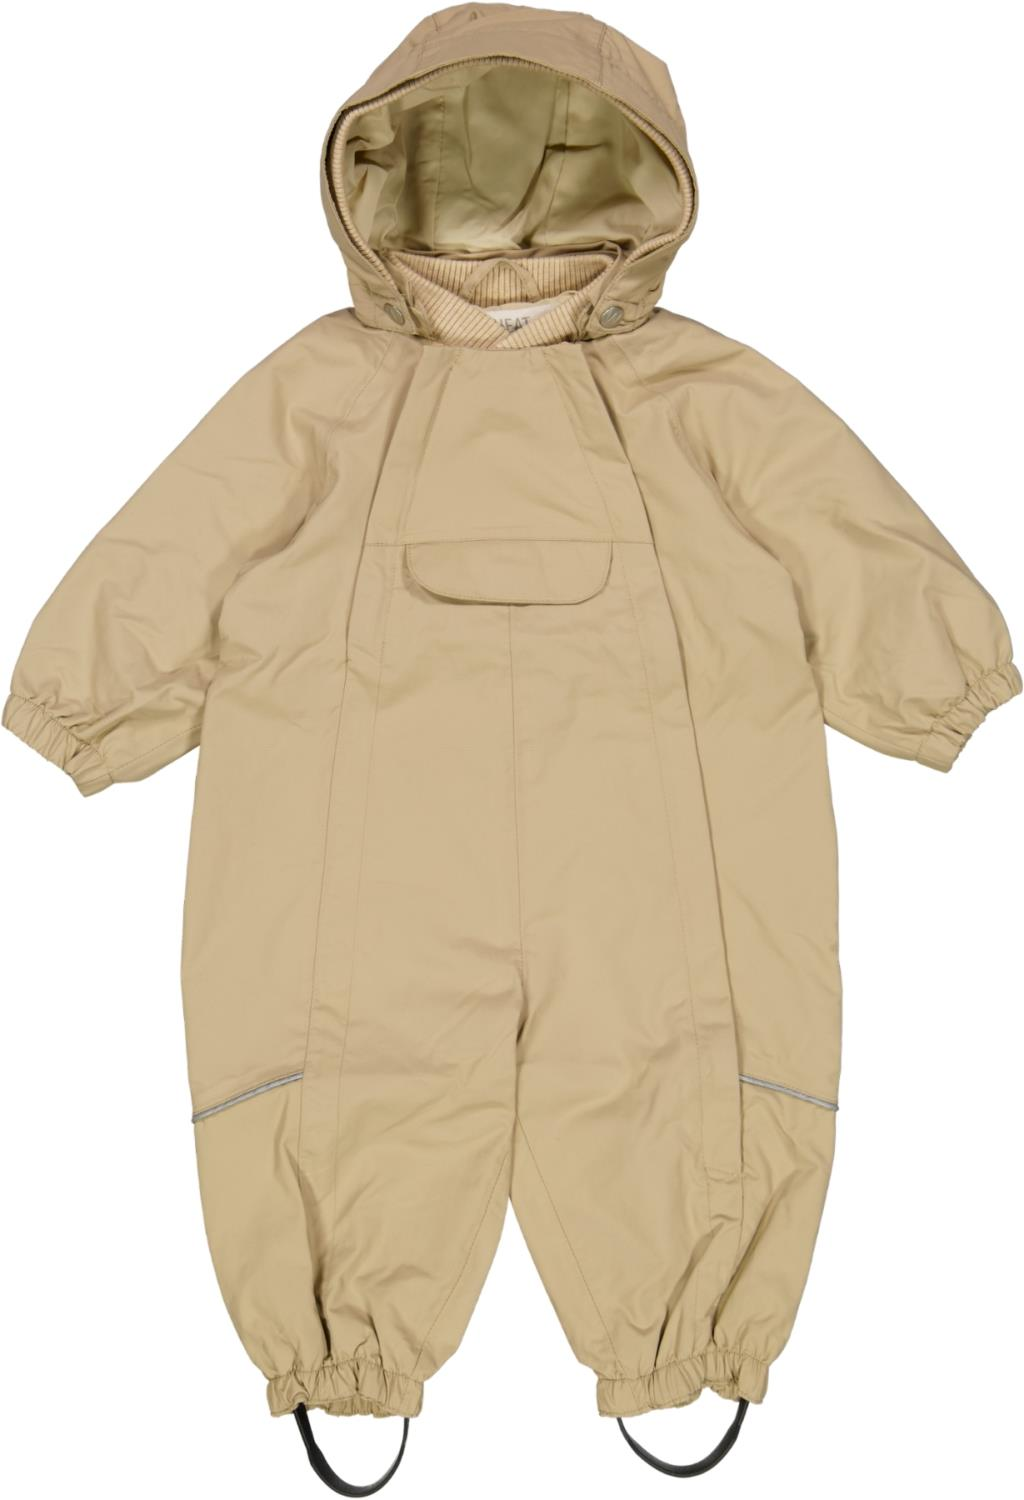 Wheat Outerwear - Outdoor suit Olly Tech F2 3332 rocky sand